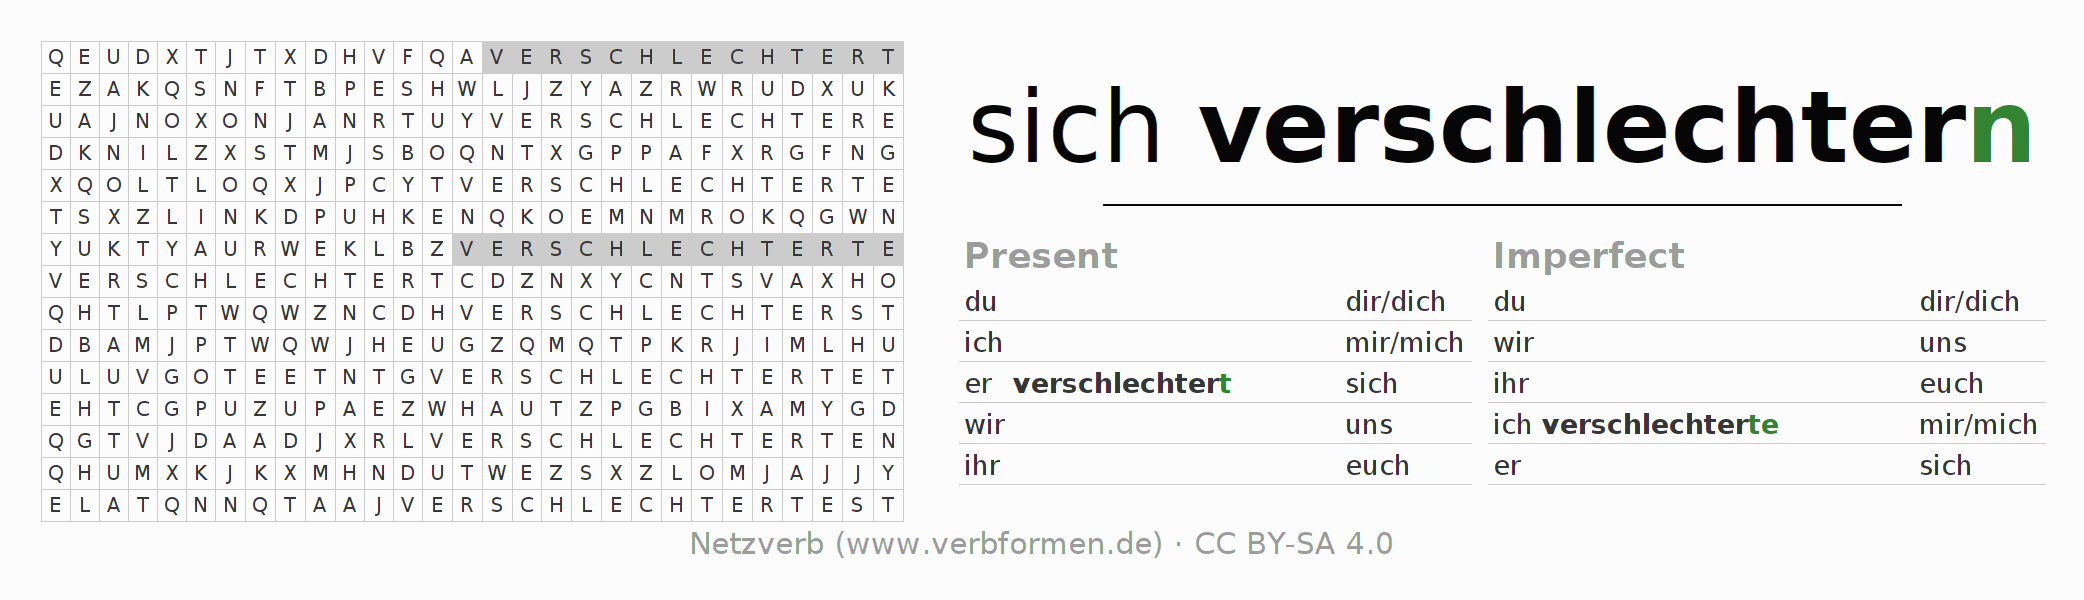 Word search puzzle for the conjugation of the verb sich verschlechtern